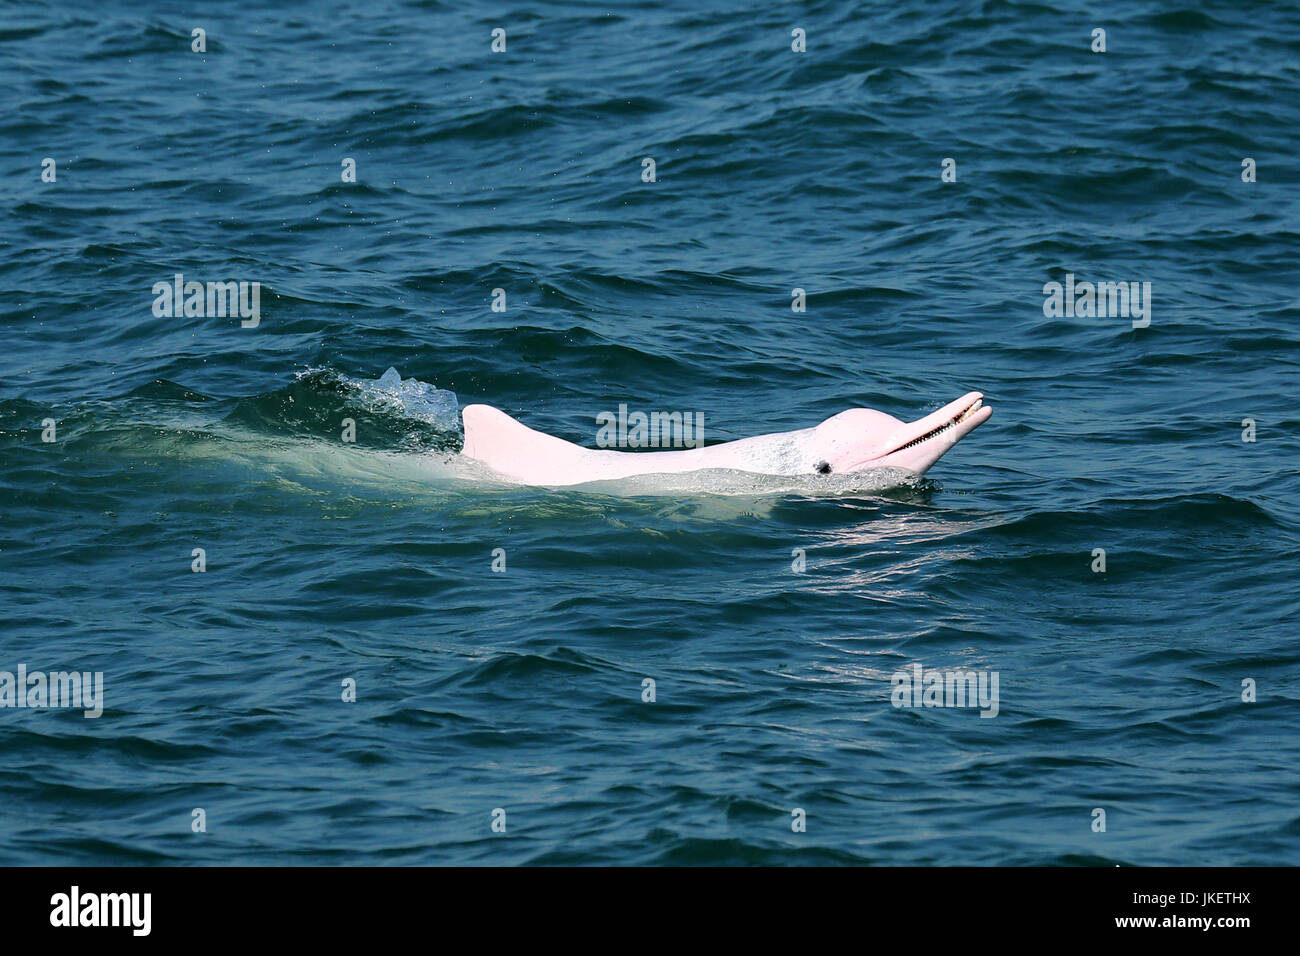 Indo-Pacific Humpback Dolphin (Sousa chinensis) surfacing with a fish in its mouth, showing off his catch - Stock Image